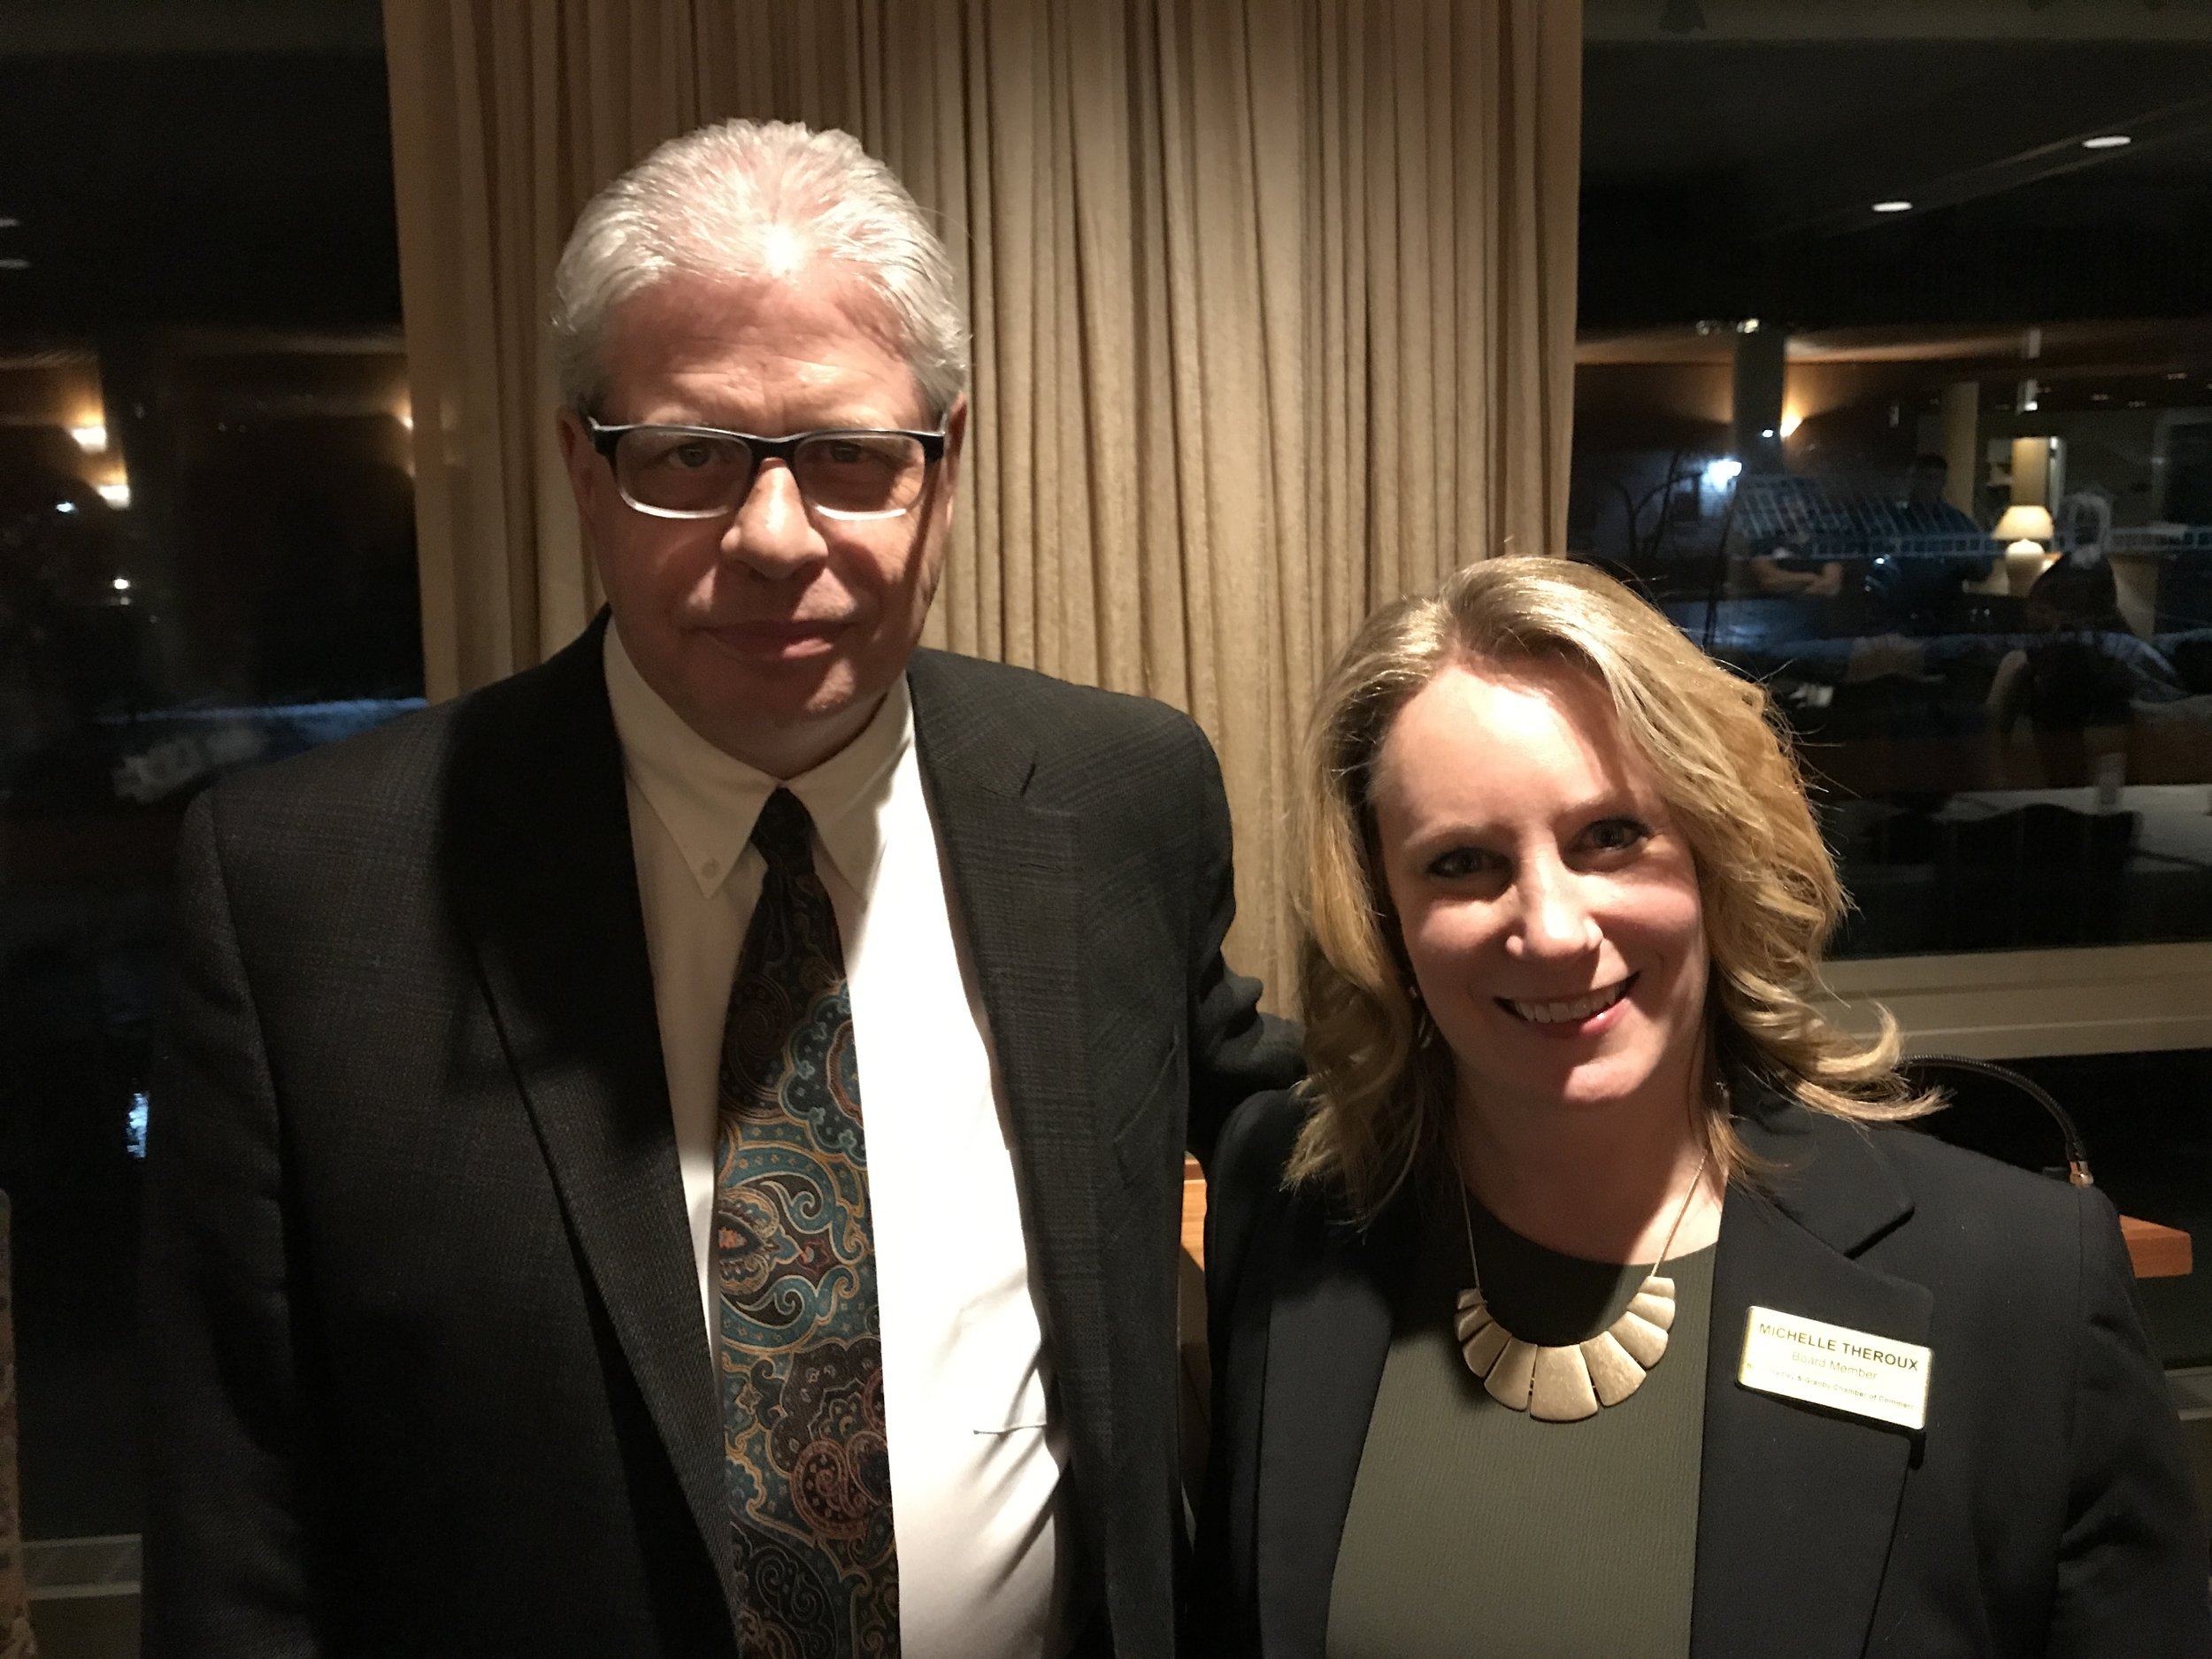 Michelle Theroux, newly elected President of the South Hadley & Granby Chamber of Commerce and Keynote Speaker George O'Brien, Editor of BusinessWest at the Chamber's Annual meeting at Willits-Hallowell Center.